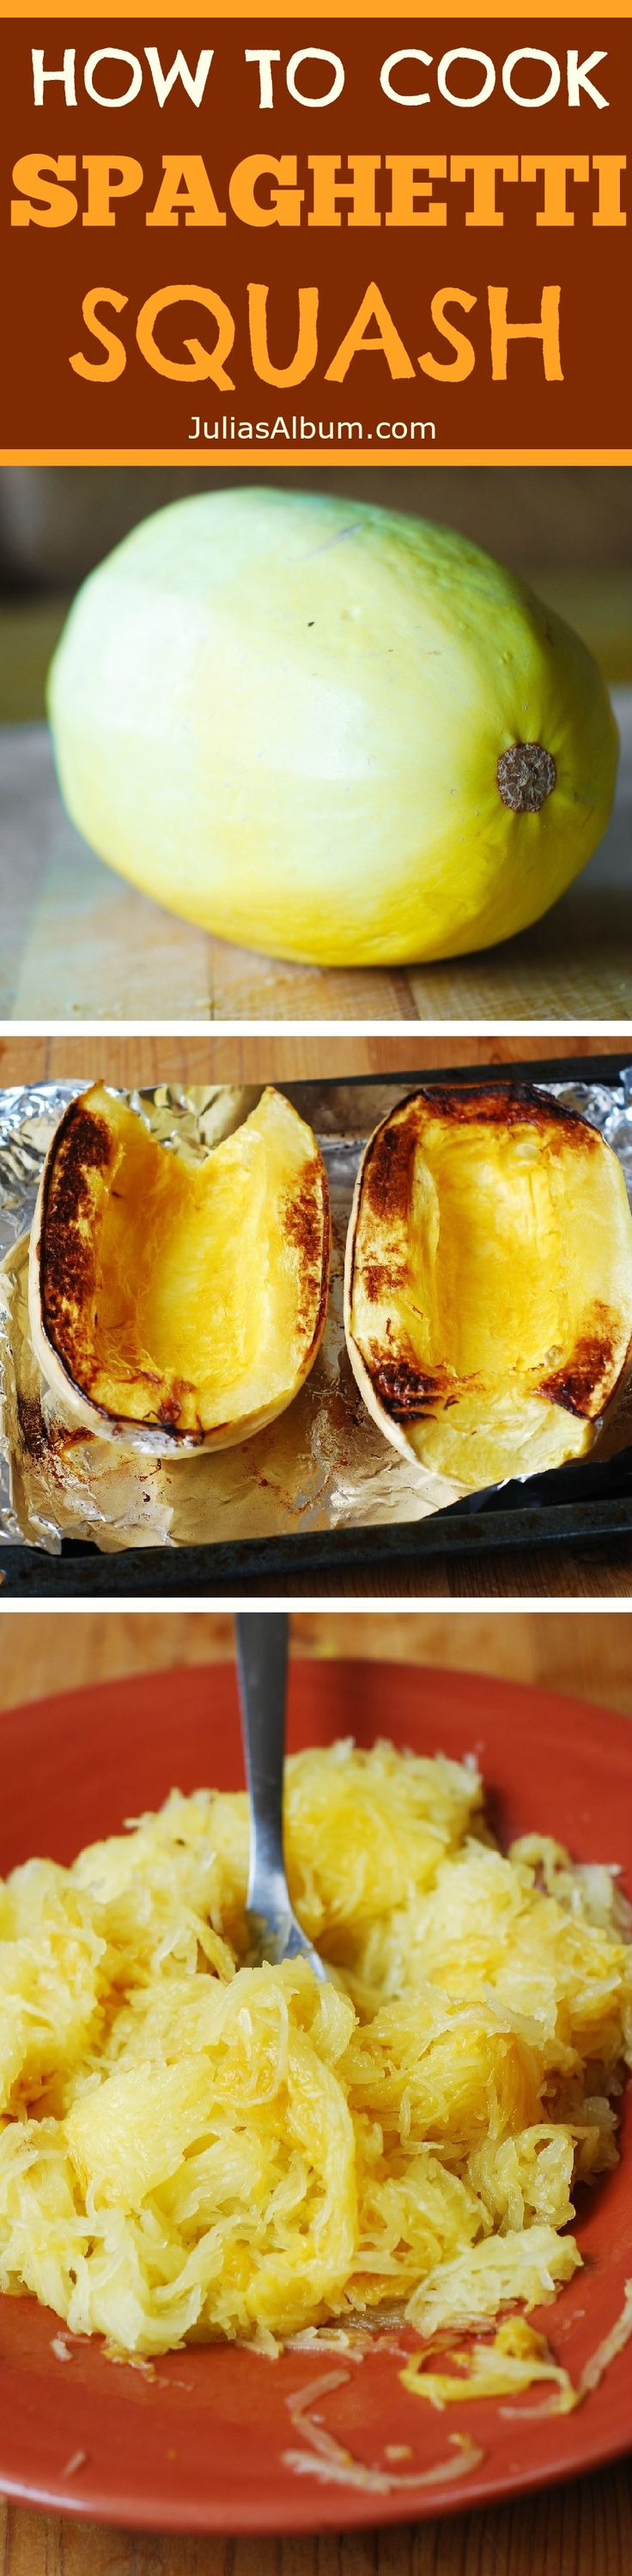 How to roast spaghetti squash in the oven, and 4 great recipes using spaghetti squash! #Thanksgiving #Fall #Autumn